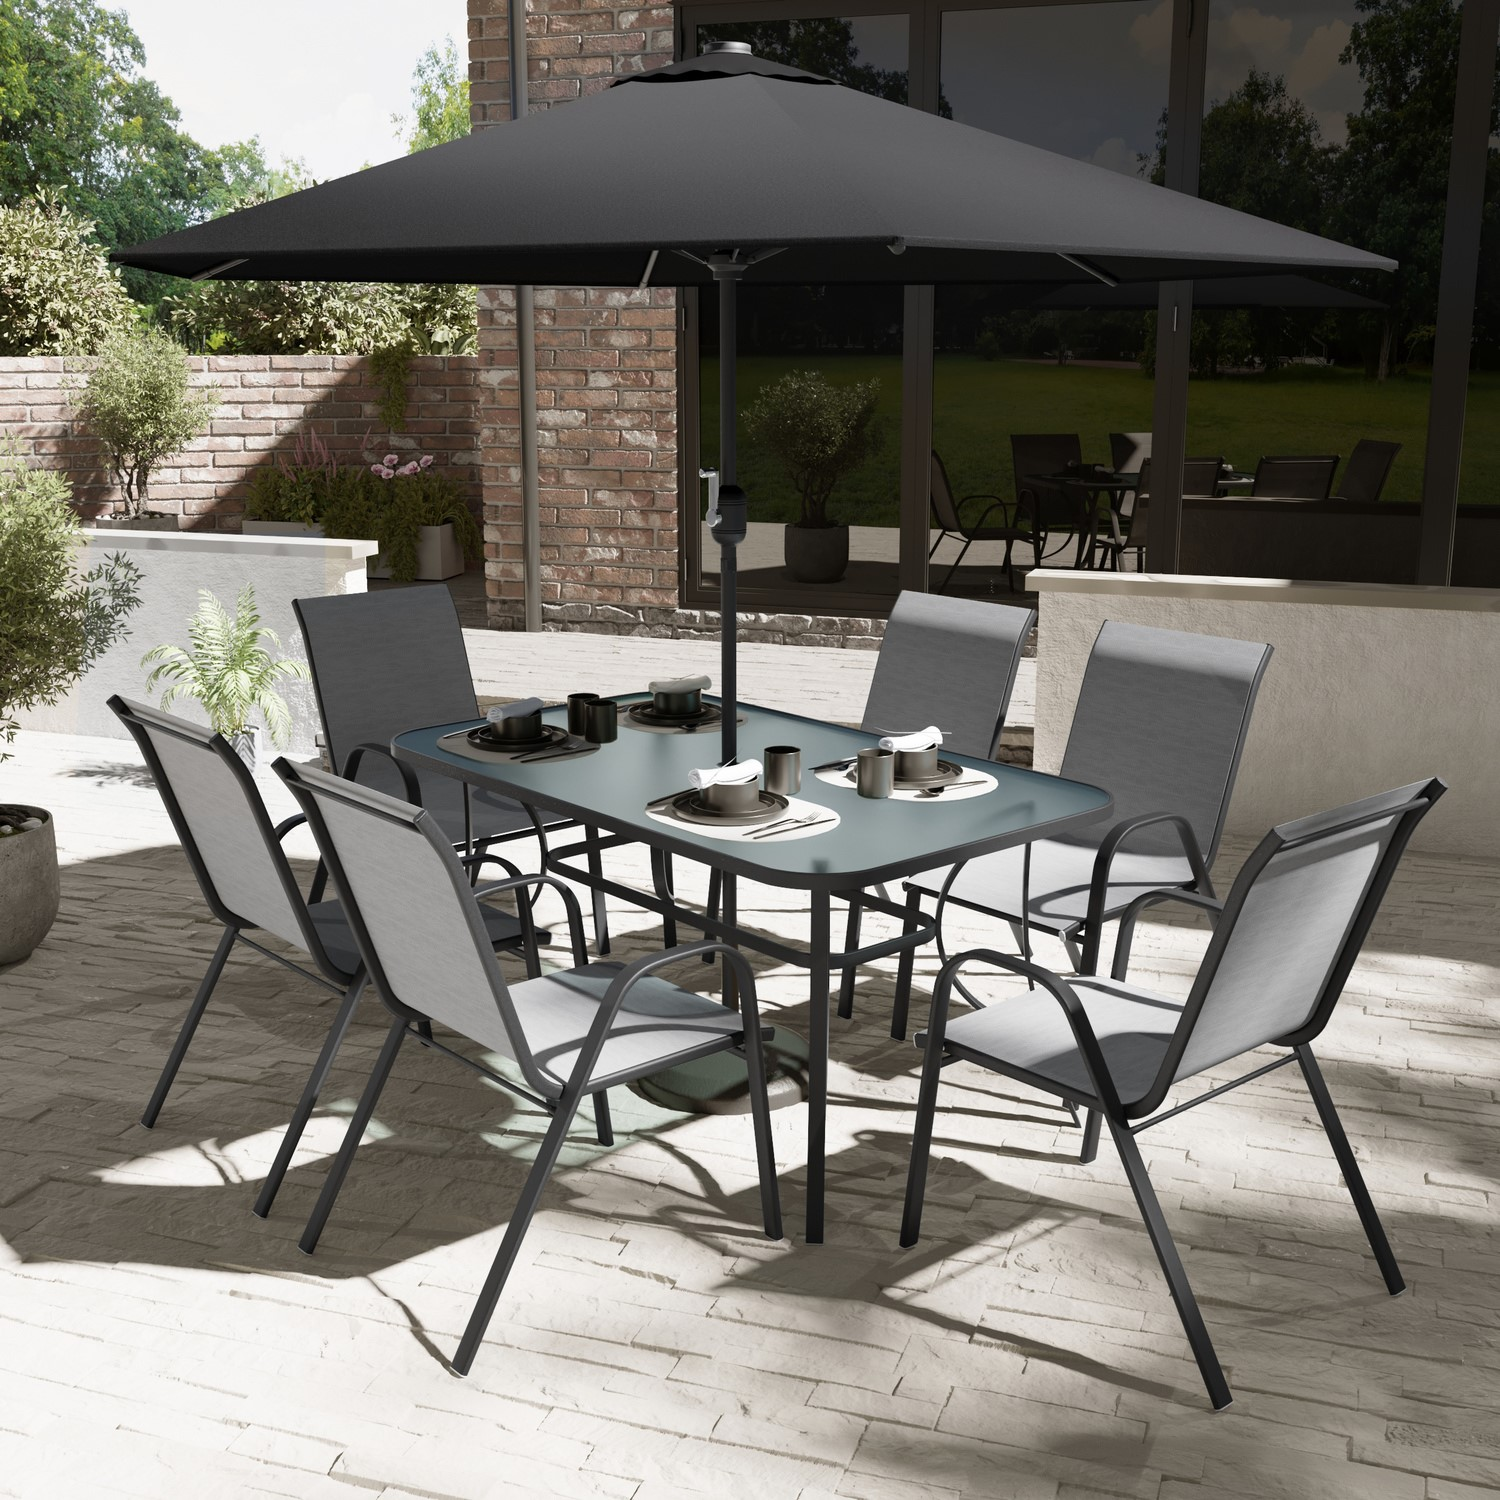 Black And Grey Metal 6 Seater Garden Furniture Set